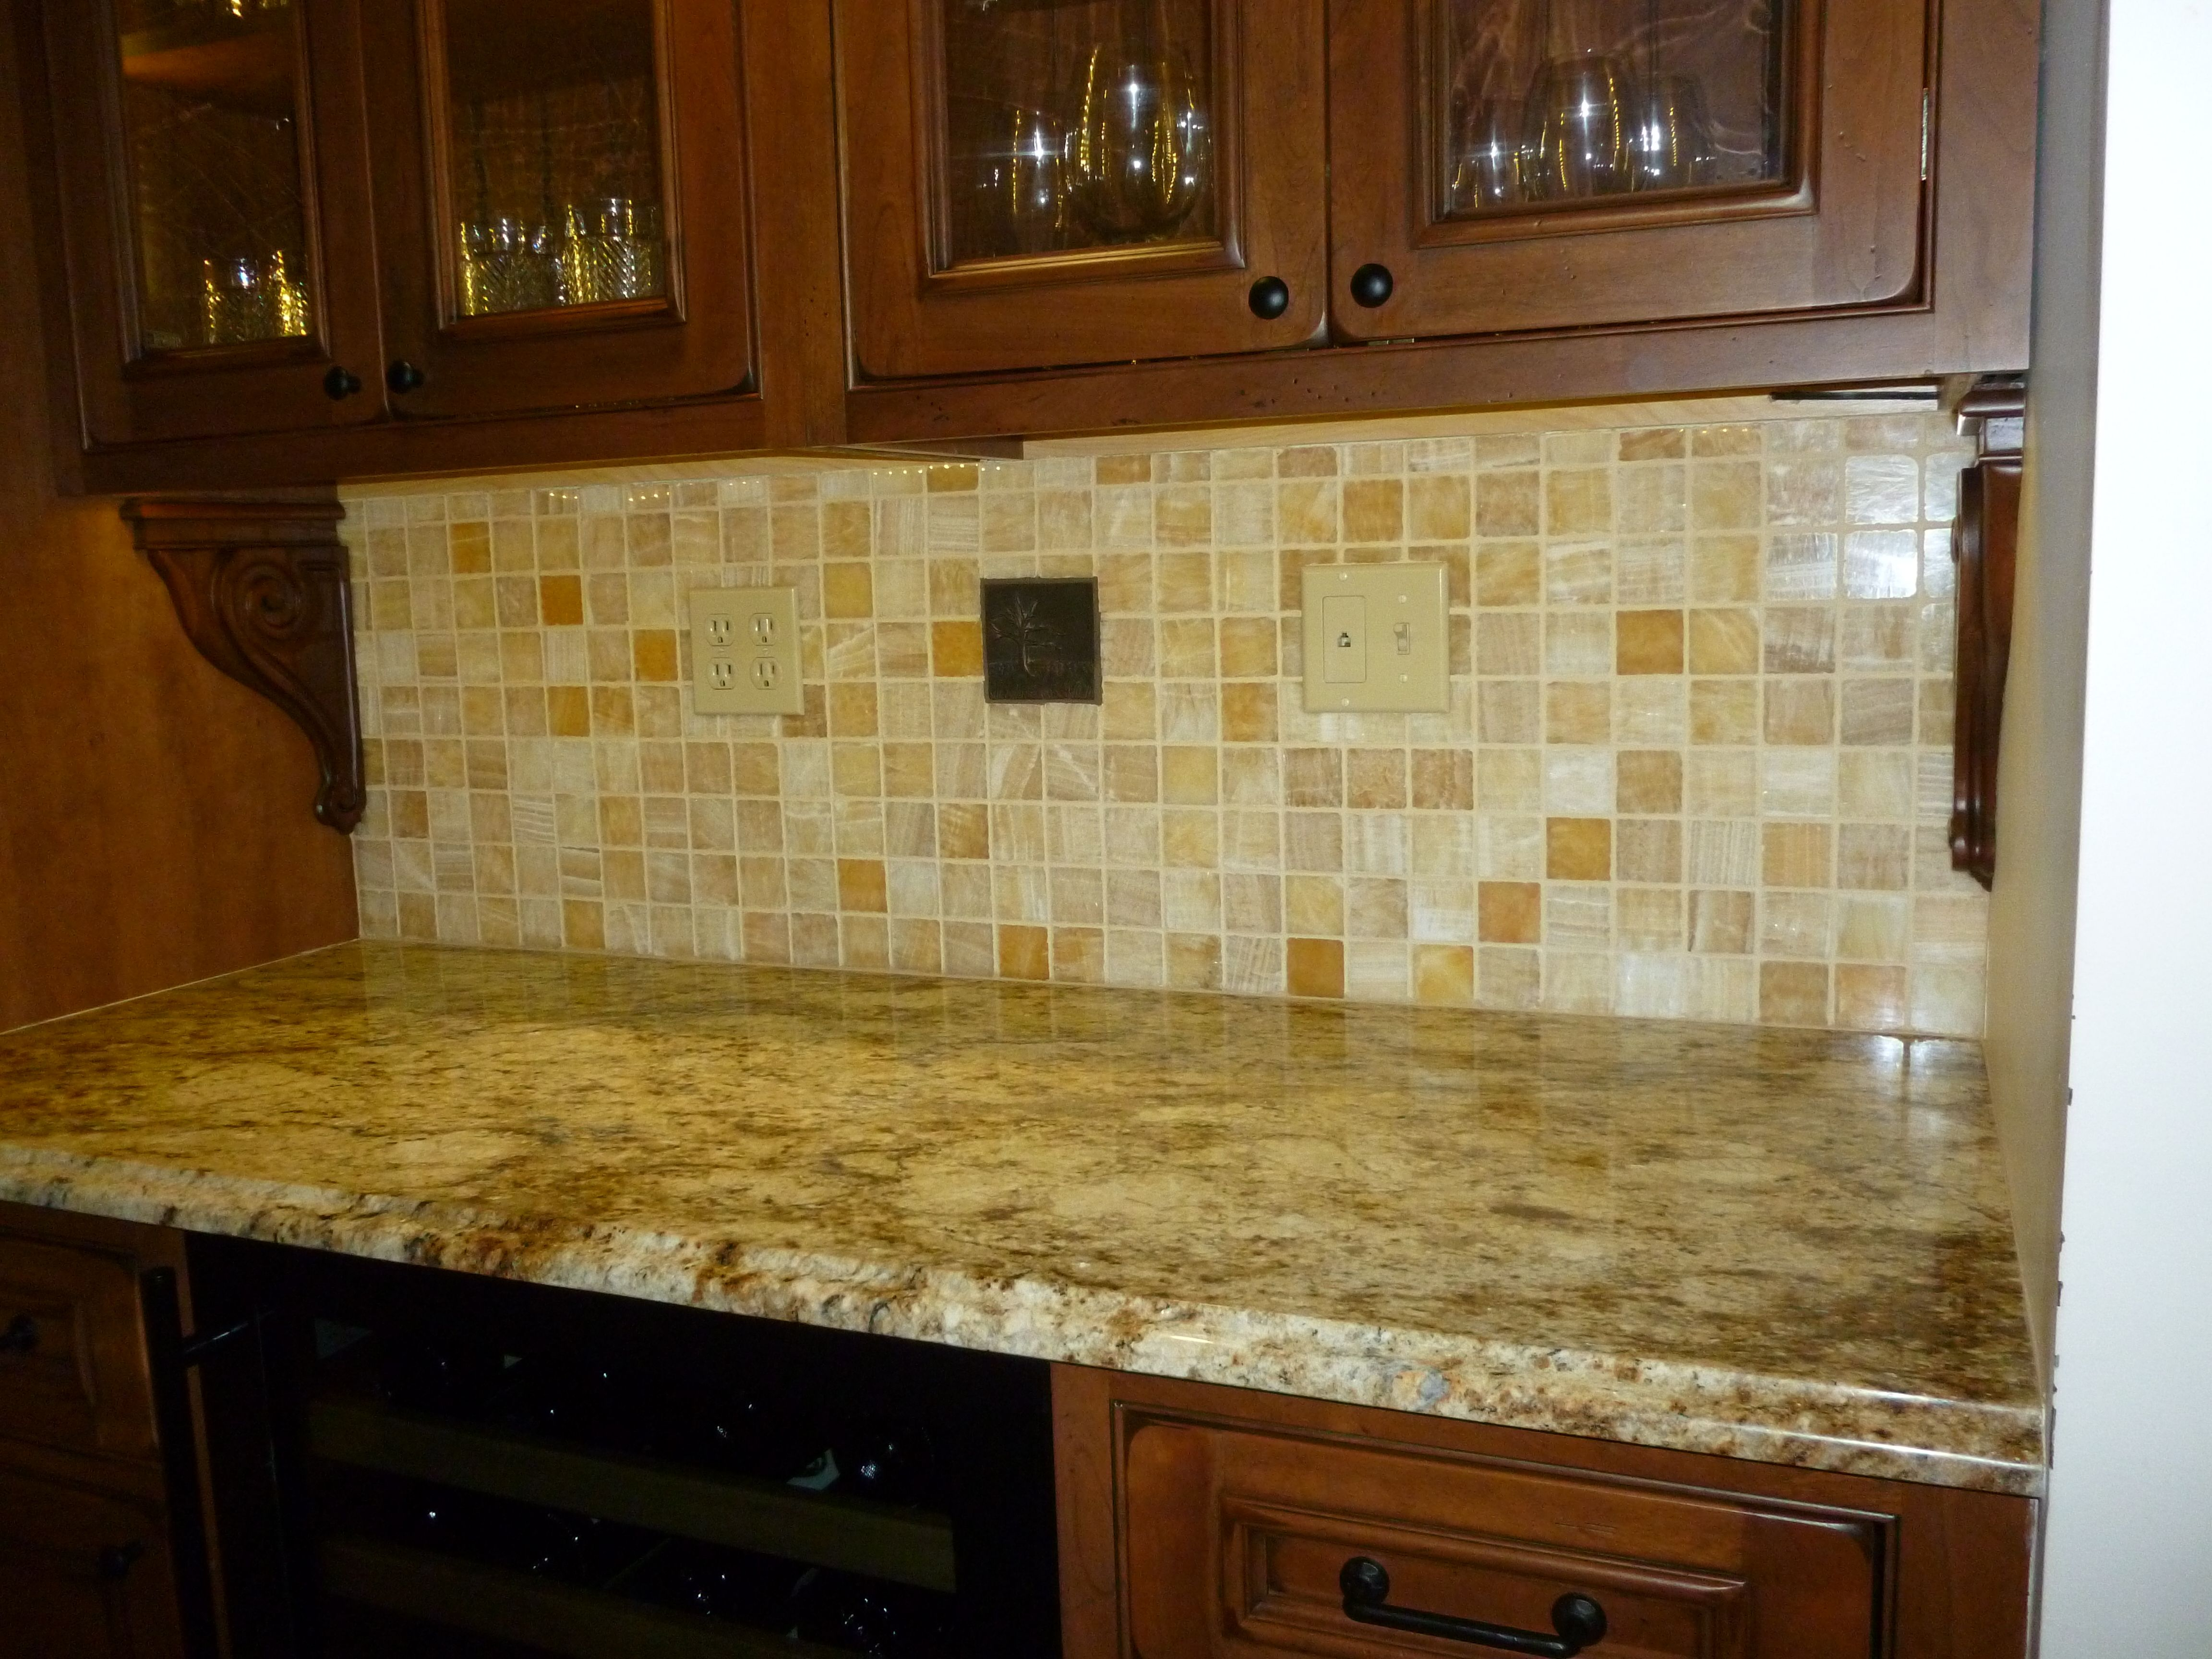 Matching Countertops With Cabinets Tiles To Match Yellow River Granite Google Search Home